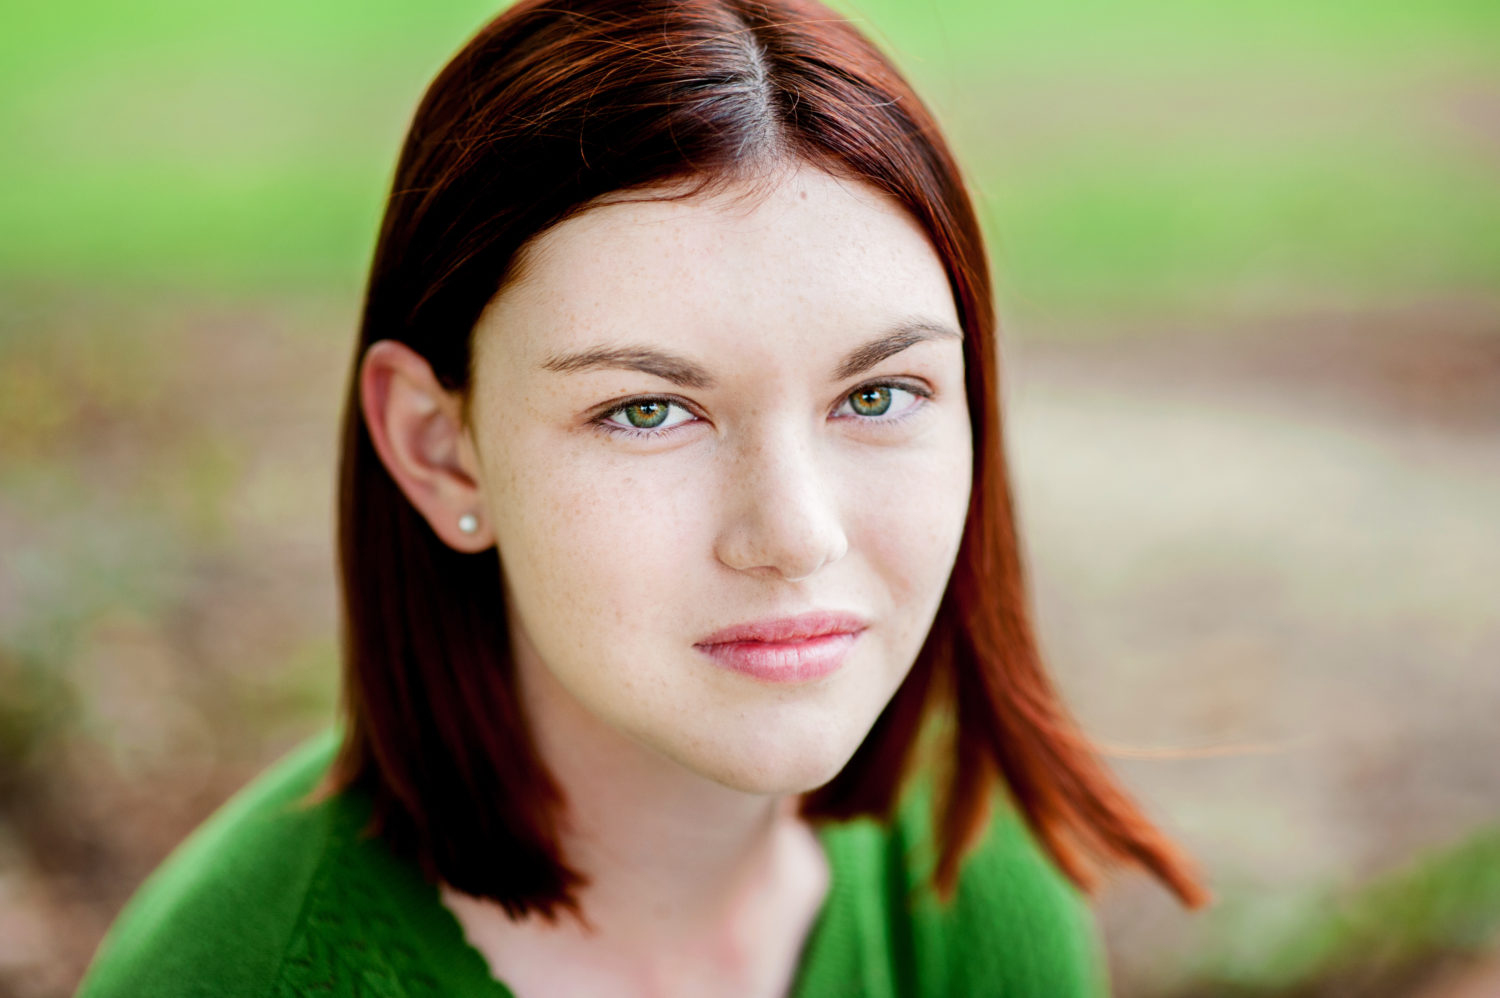 A young woman with red hair and green eyes wearing a green sweater